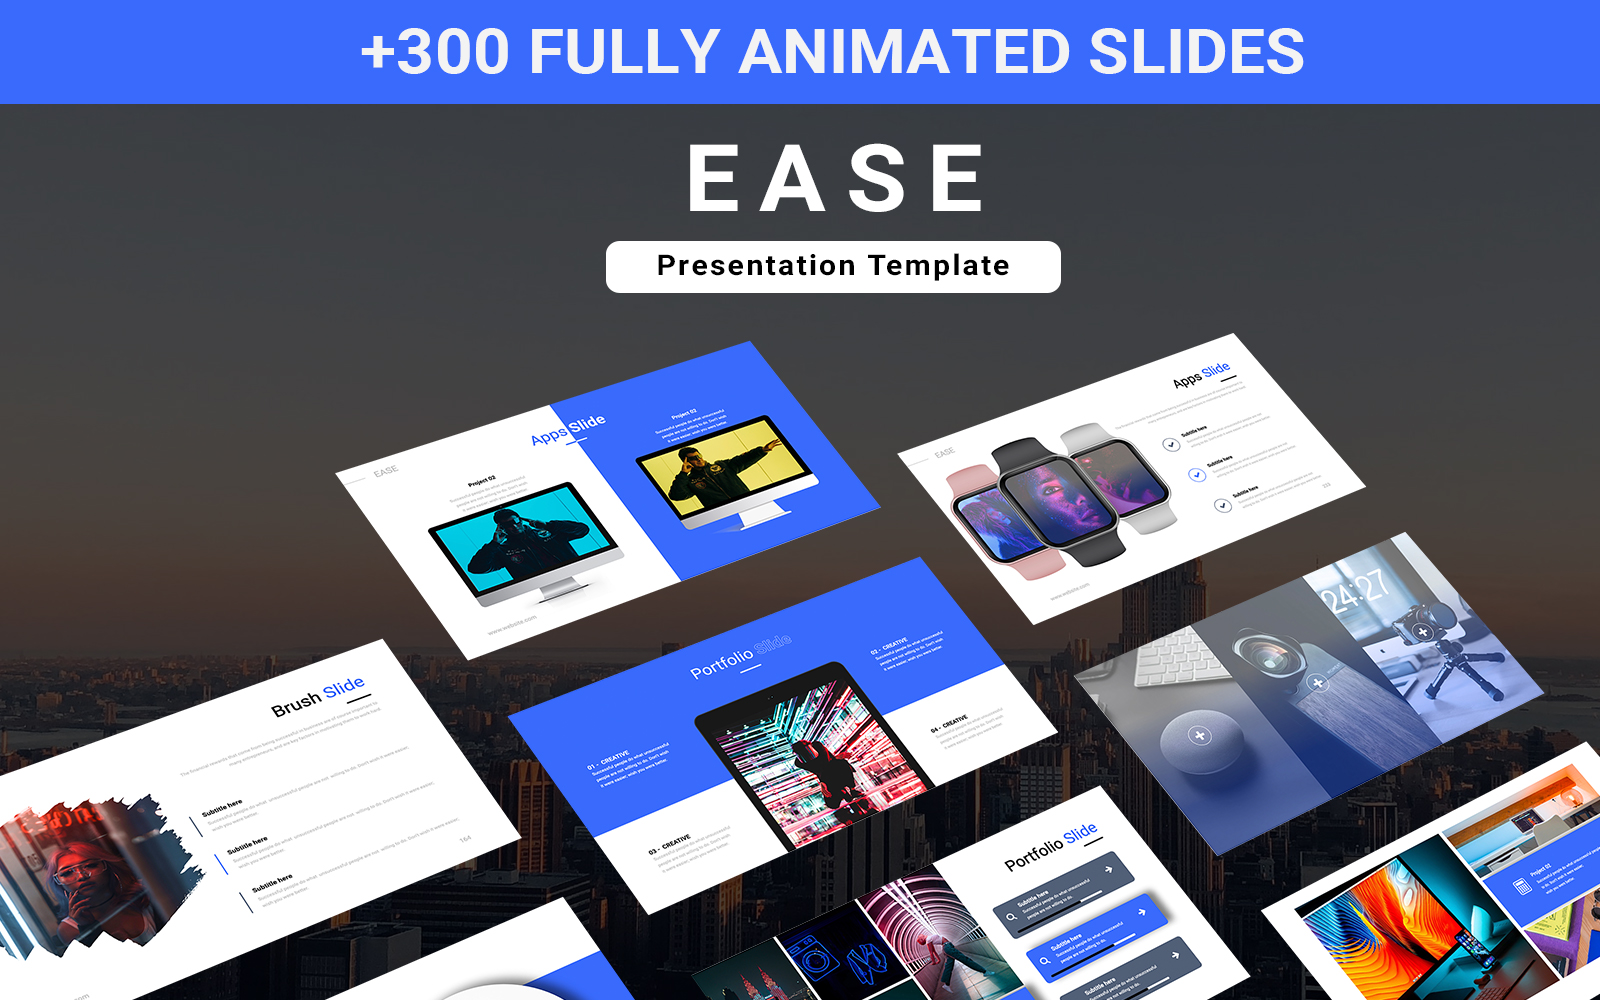 EASE PowerPoint Template